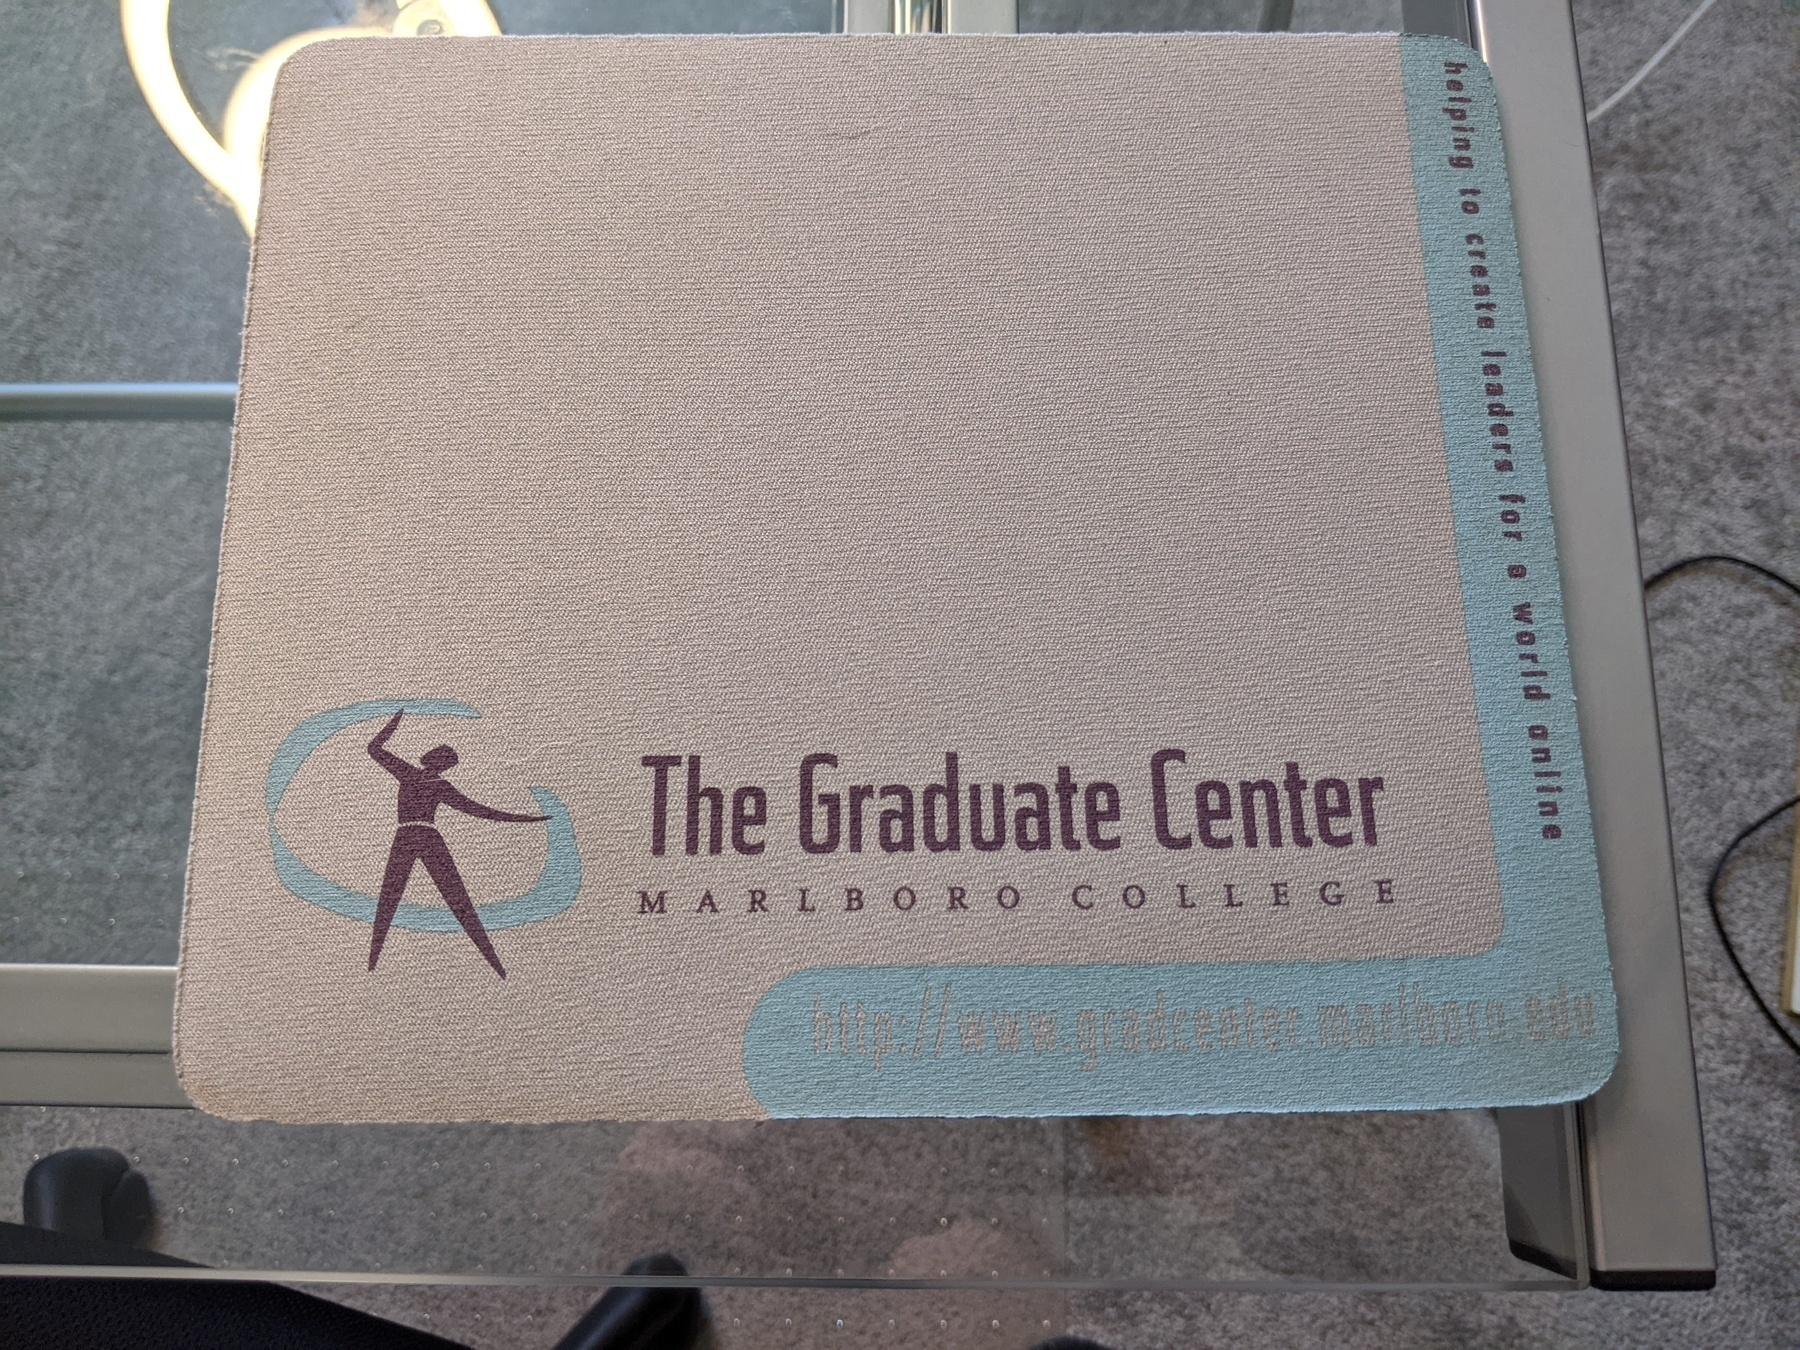 Mousepad that says Graduate Center at Marlboro College, helping to create leaders for a world online.